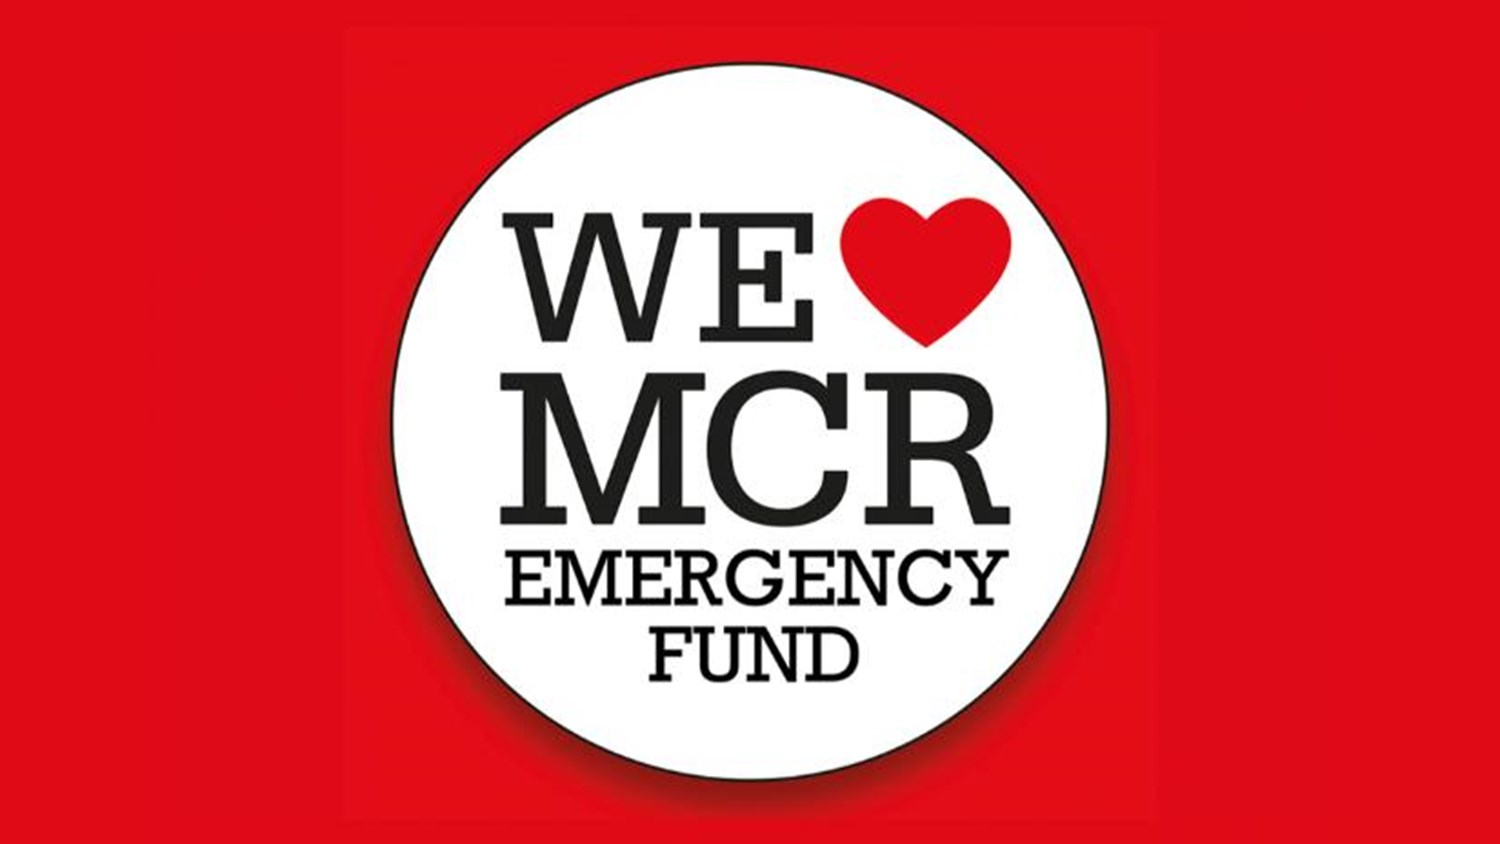 Fundraising for the We Love MCR Emergency Fund